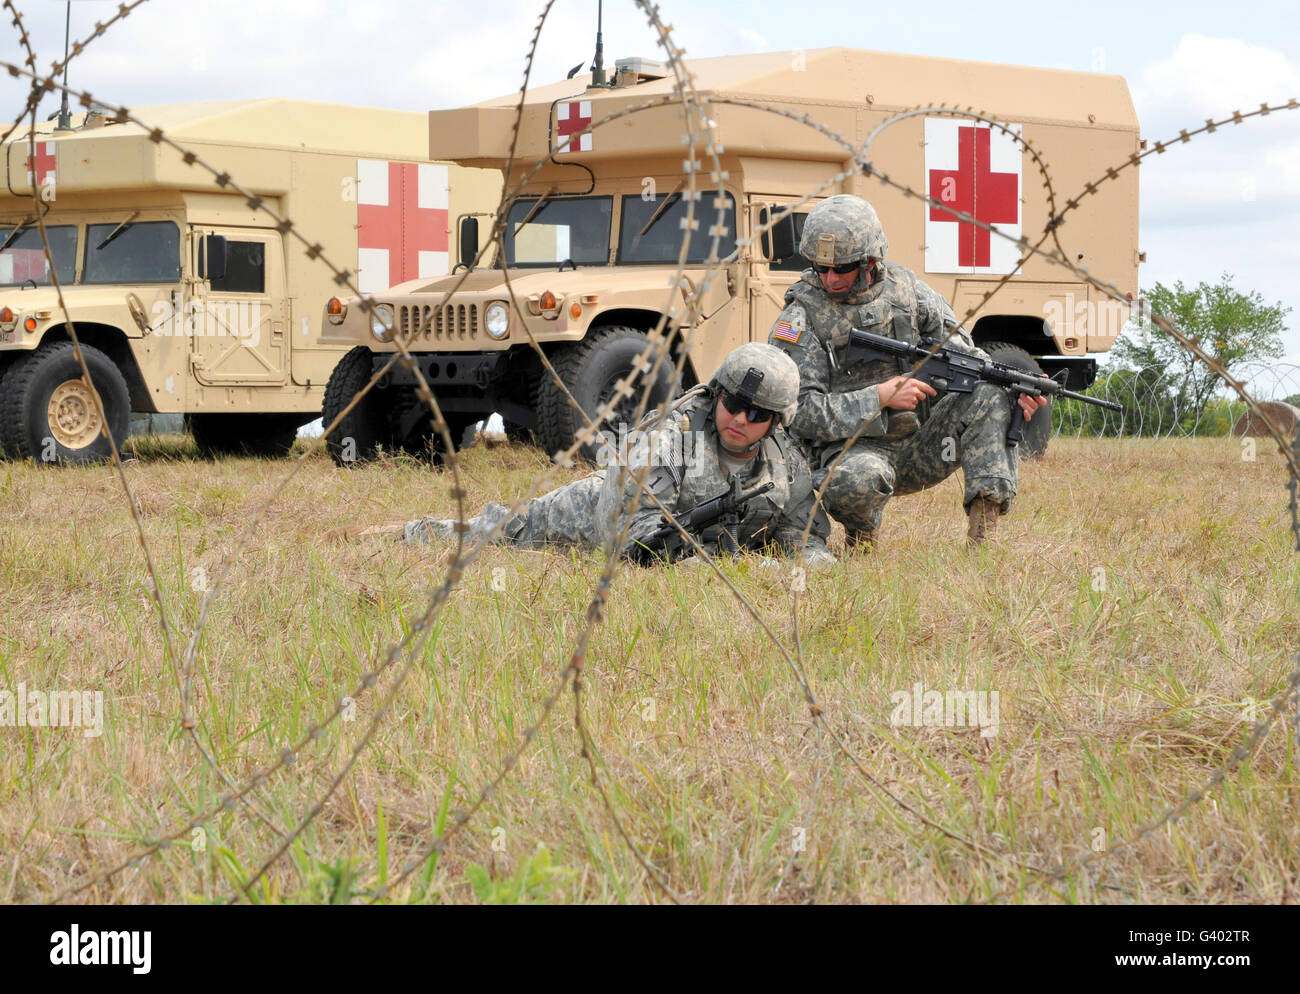 U.S. soldiers set up an effective security perimeter at Fort Riley, Kansas. - Stock Image